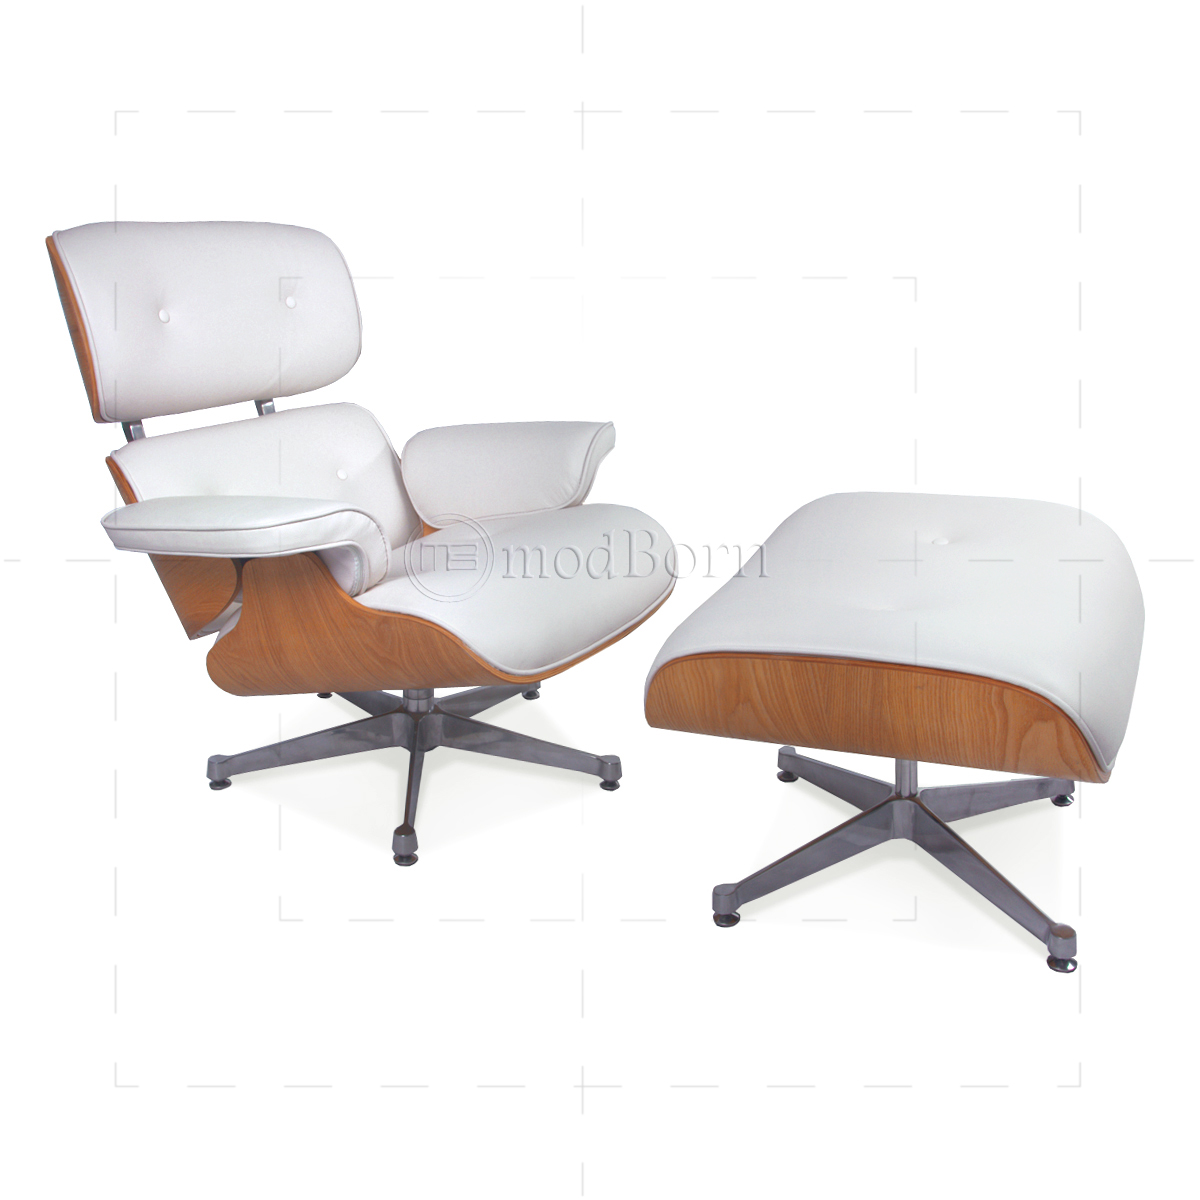 White Leather Chair And Ottoman - Eames style lounge chair and ottoman white leather oak plywood taller version